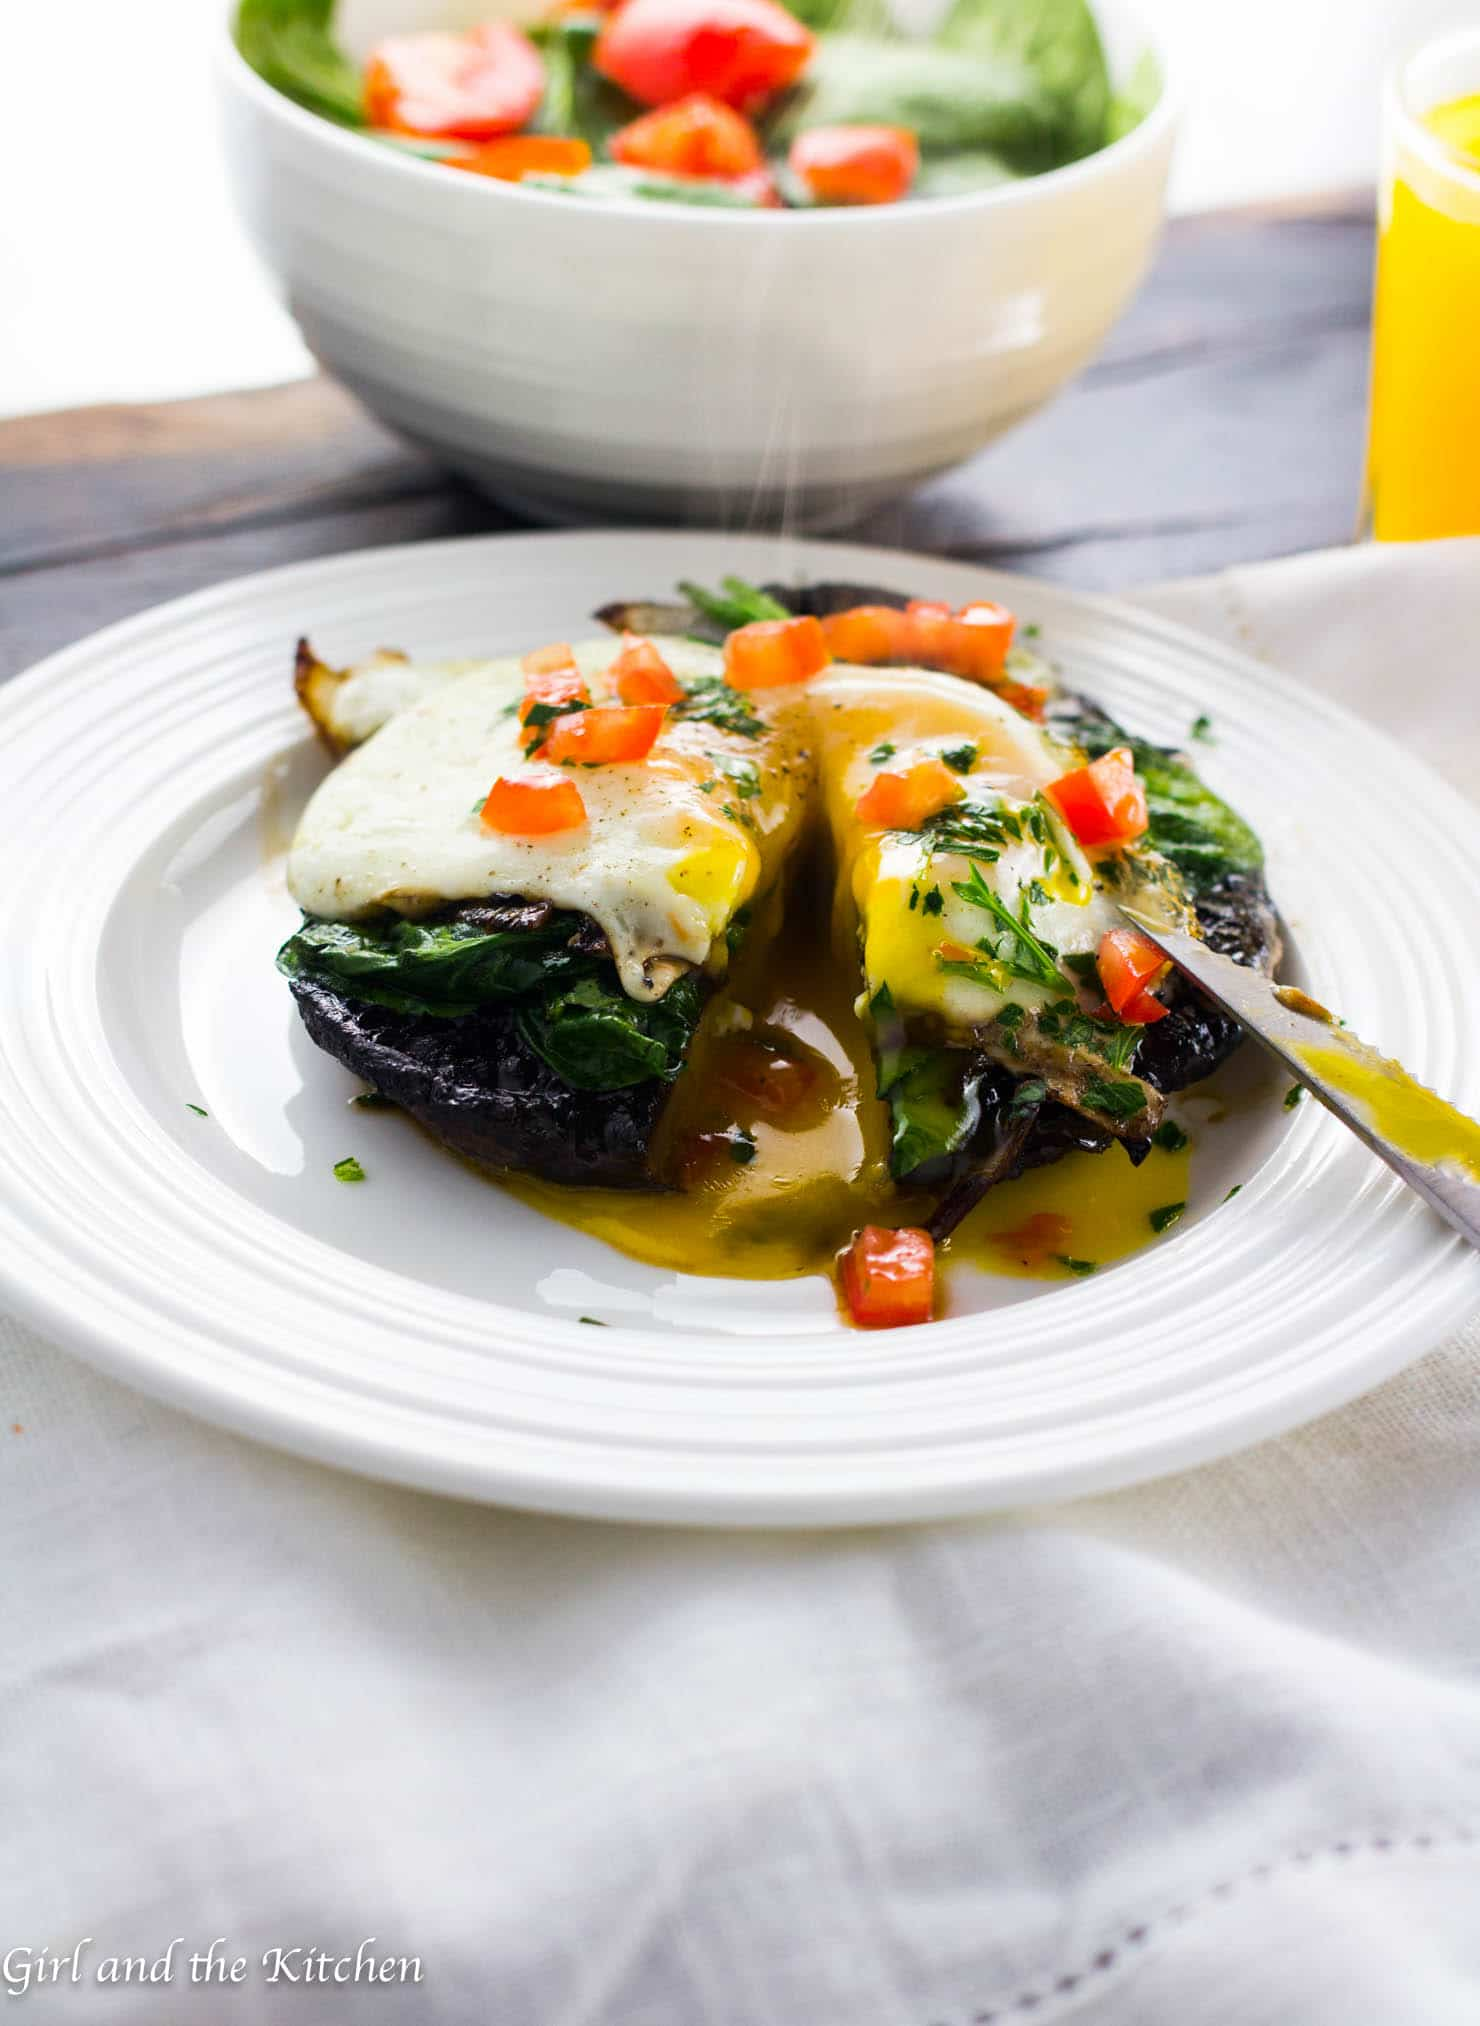 An incredibly easy one pan stuffed portobello mushrooms recipe full of spinach, garlic and topped with a gloriously runny egg. The perfect addition to a last minute brunch!